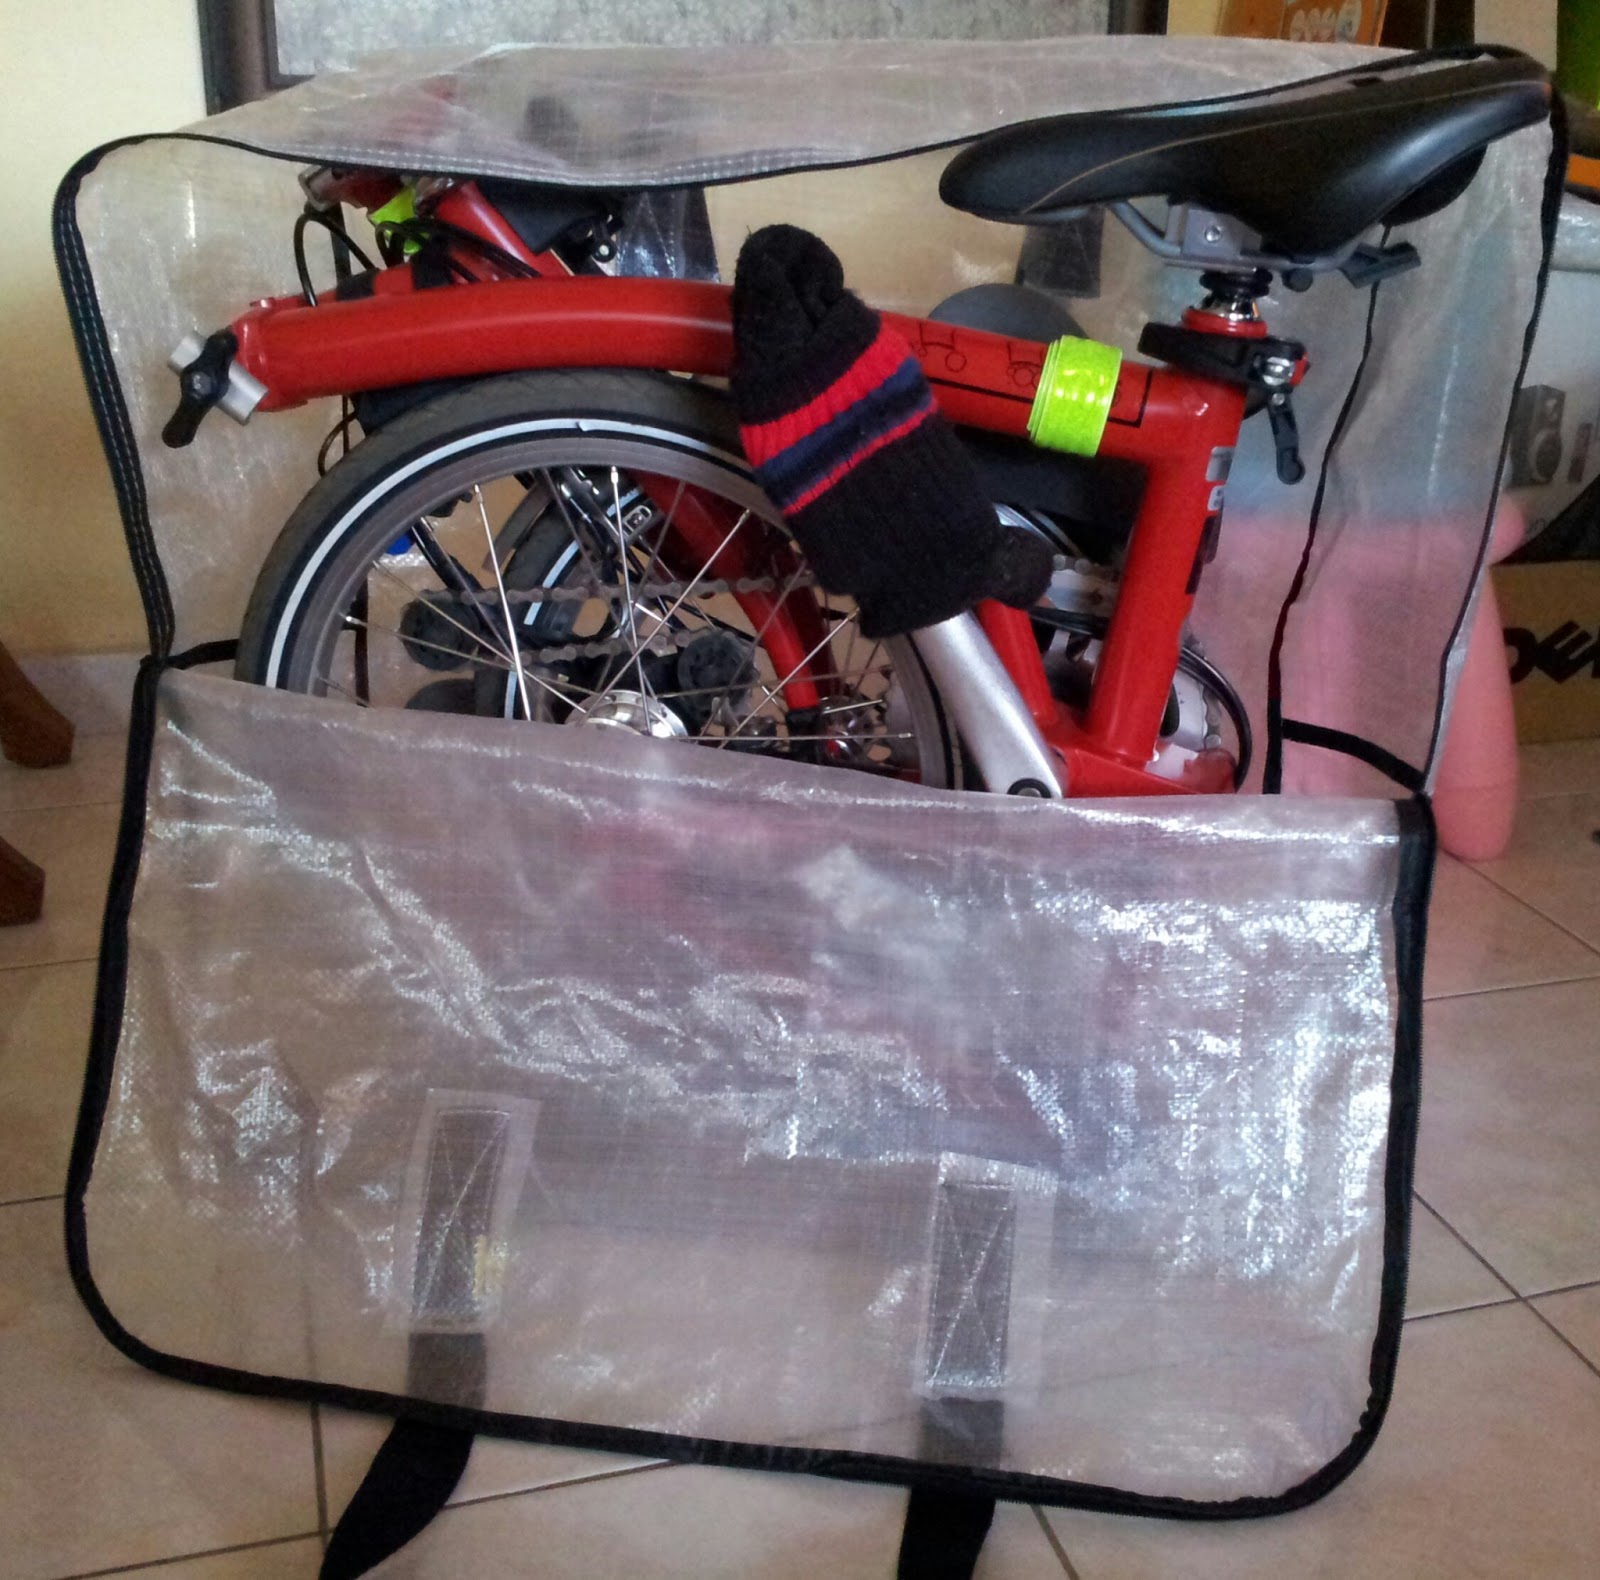 The Opening Of The Bag Is Huge To Allow Easy Packing Of The Bicycle.